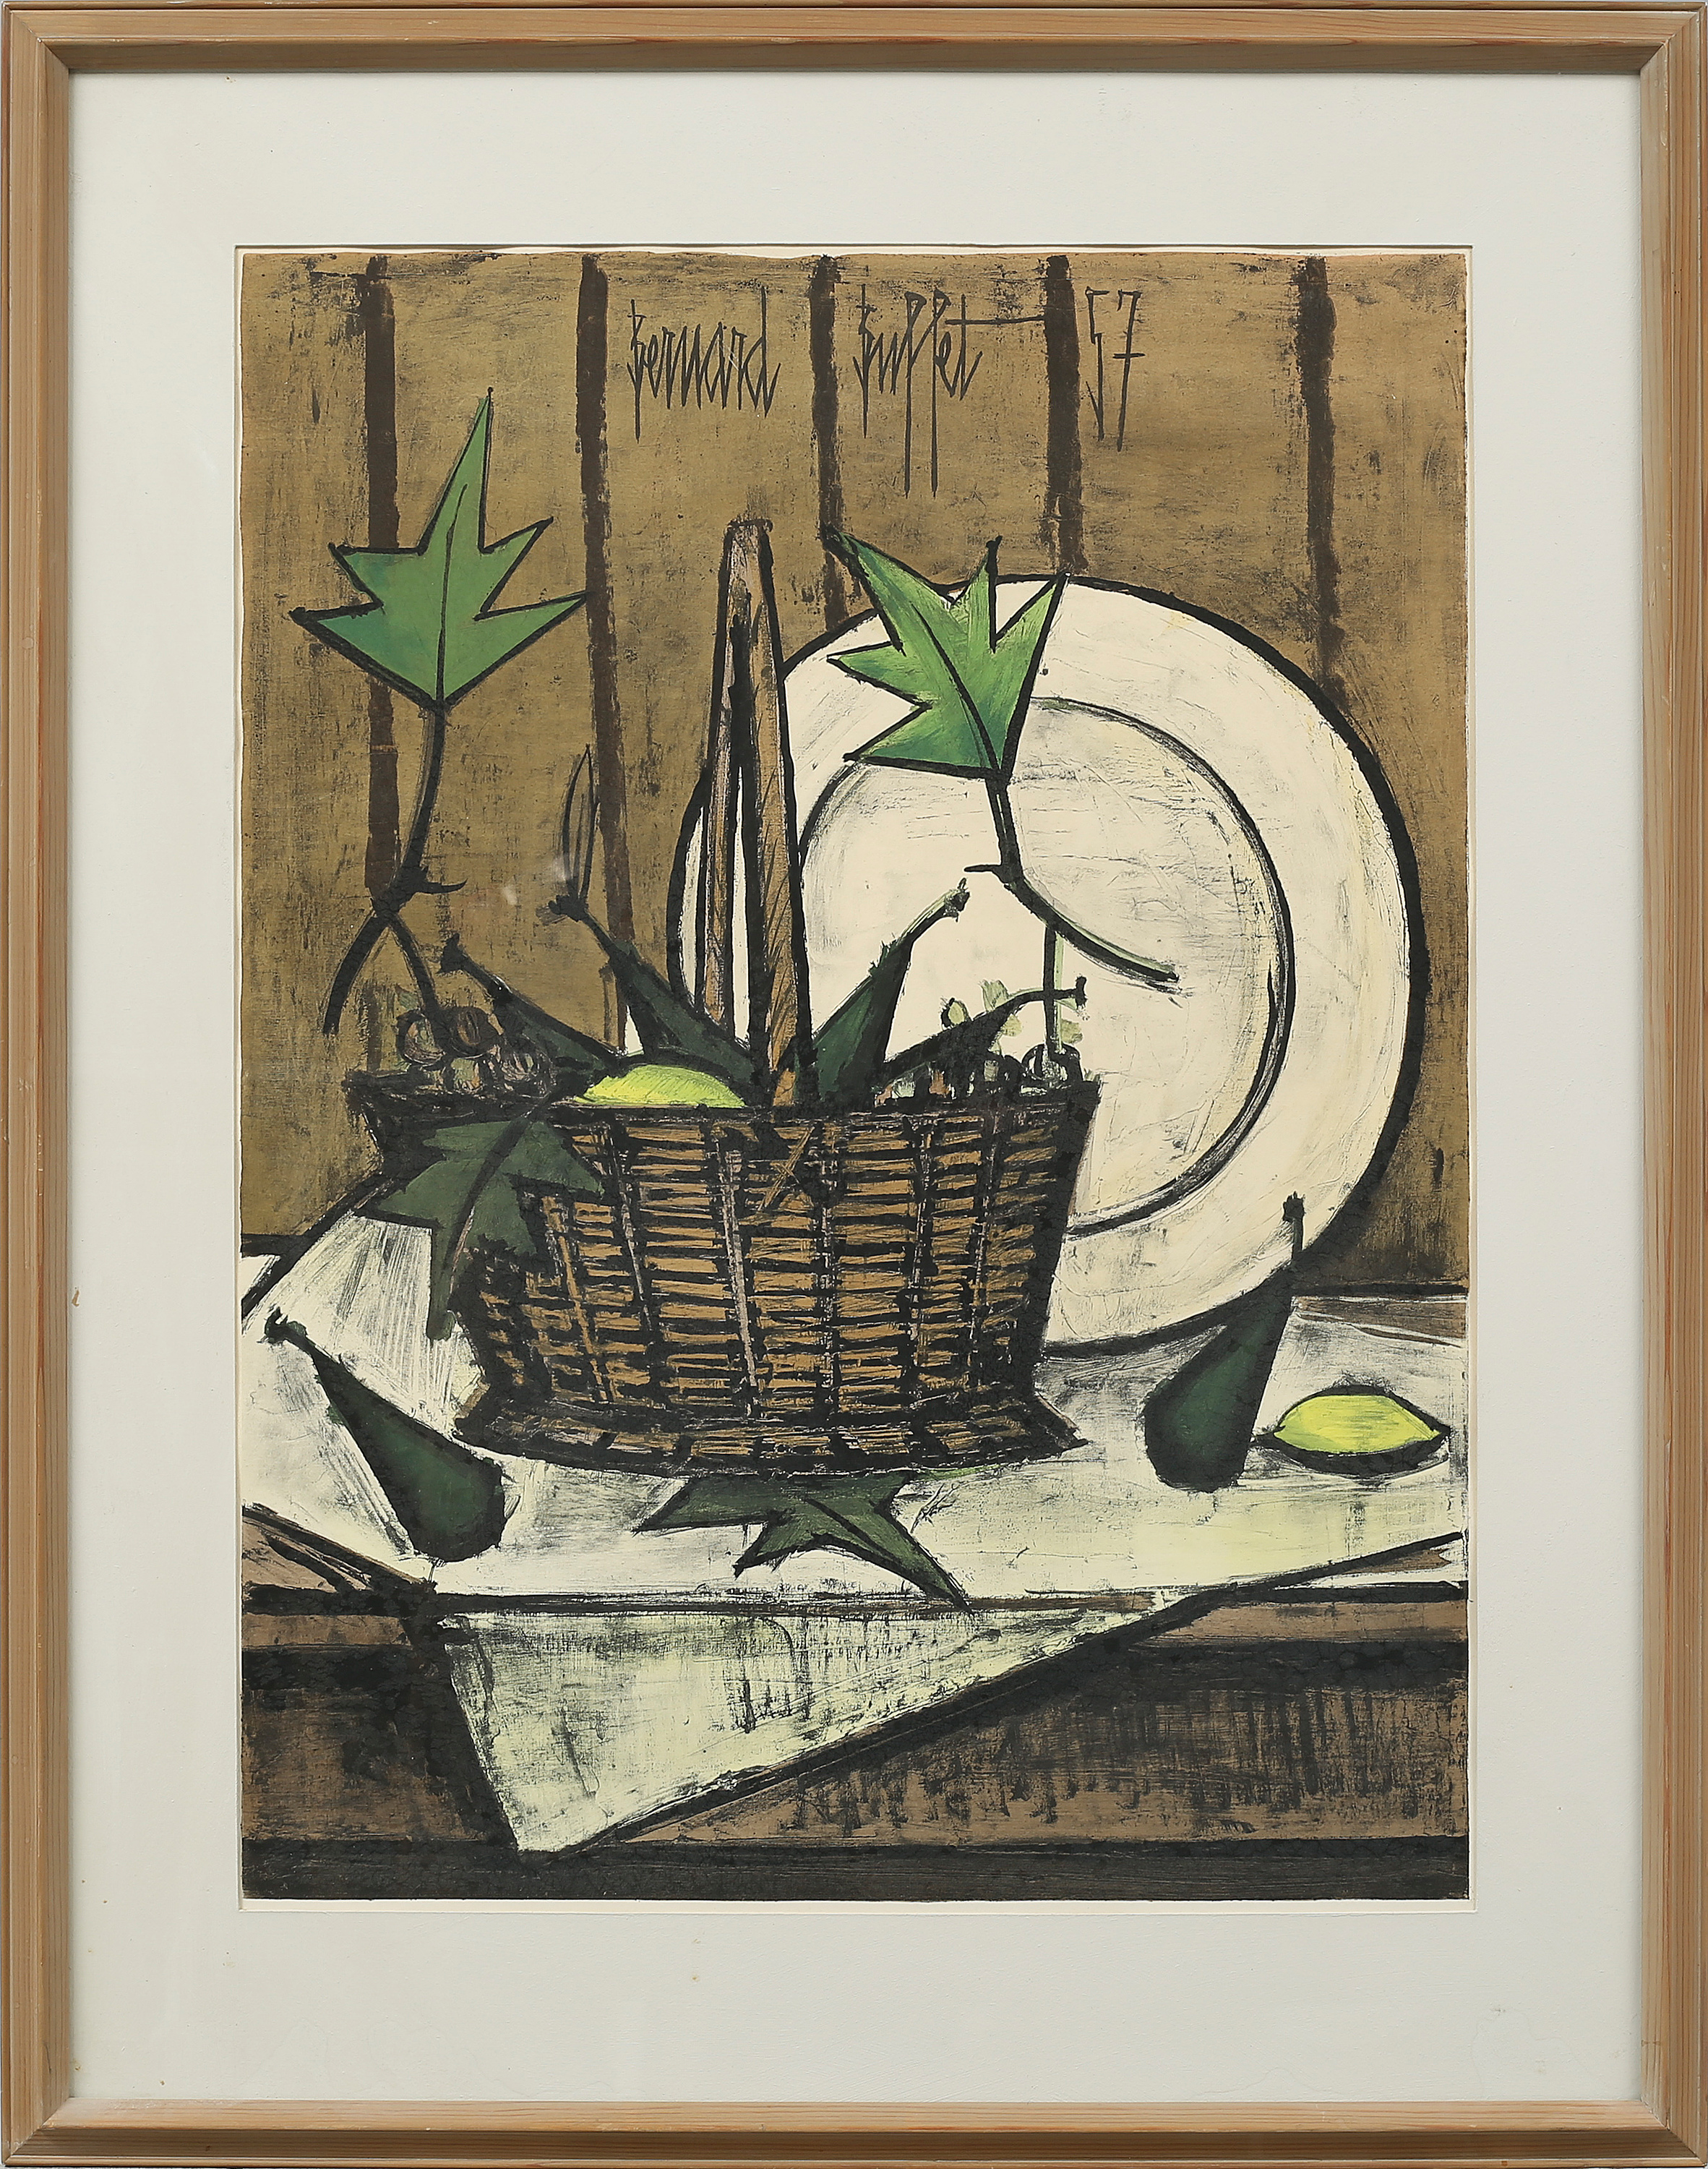 Fantastic Bernard Buffet A Partly Hand Colord Litograph Signed And Download Free Architecture Designs Scobabritishbridgeorg